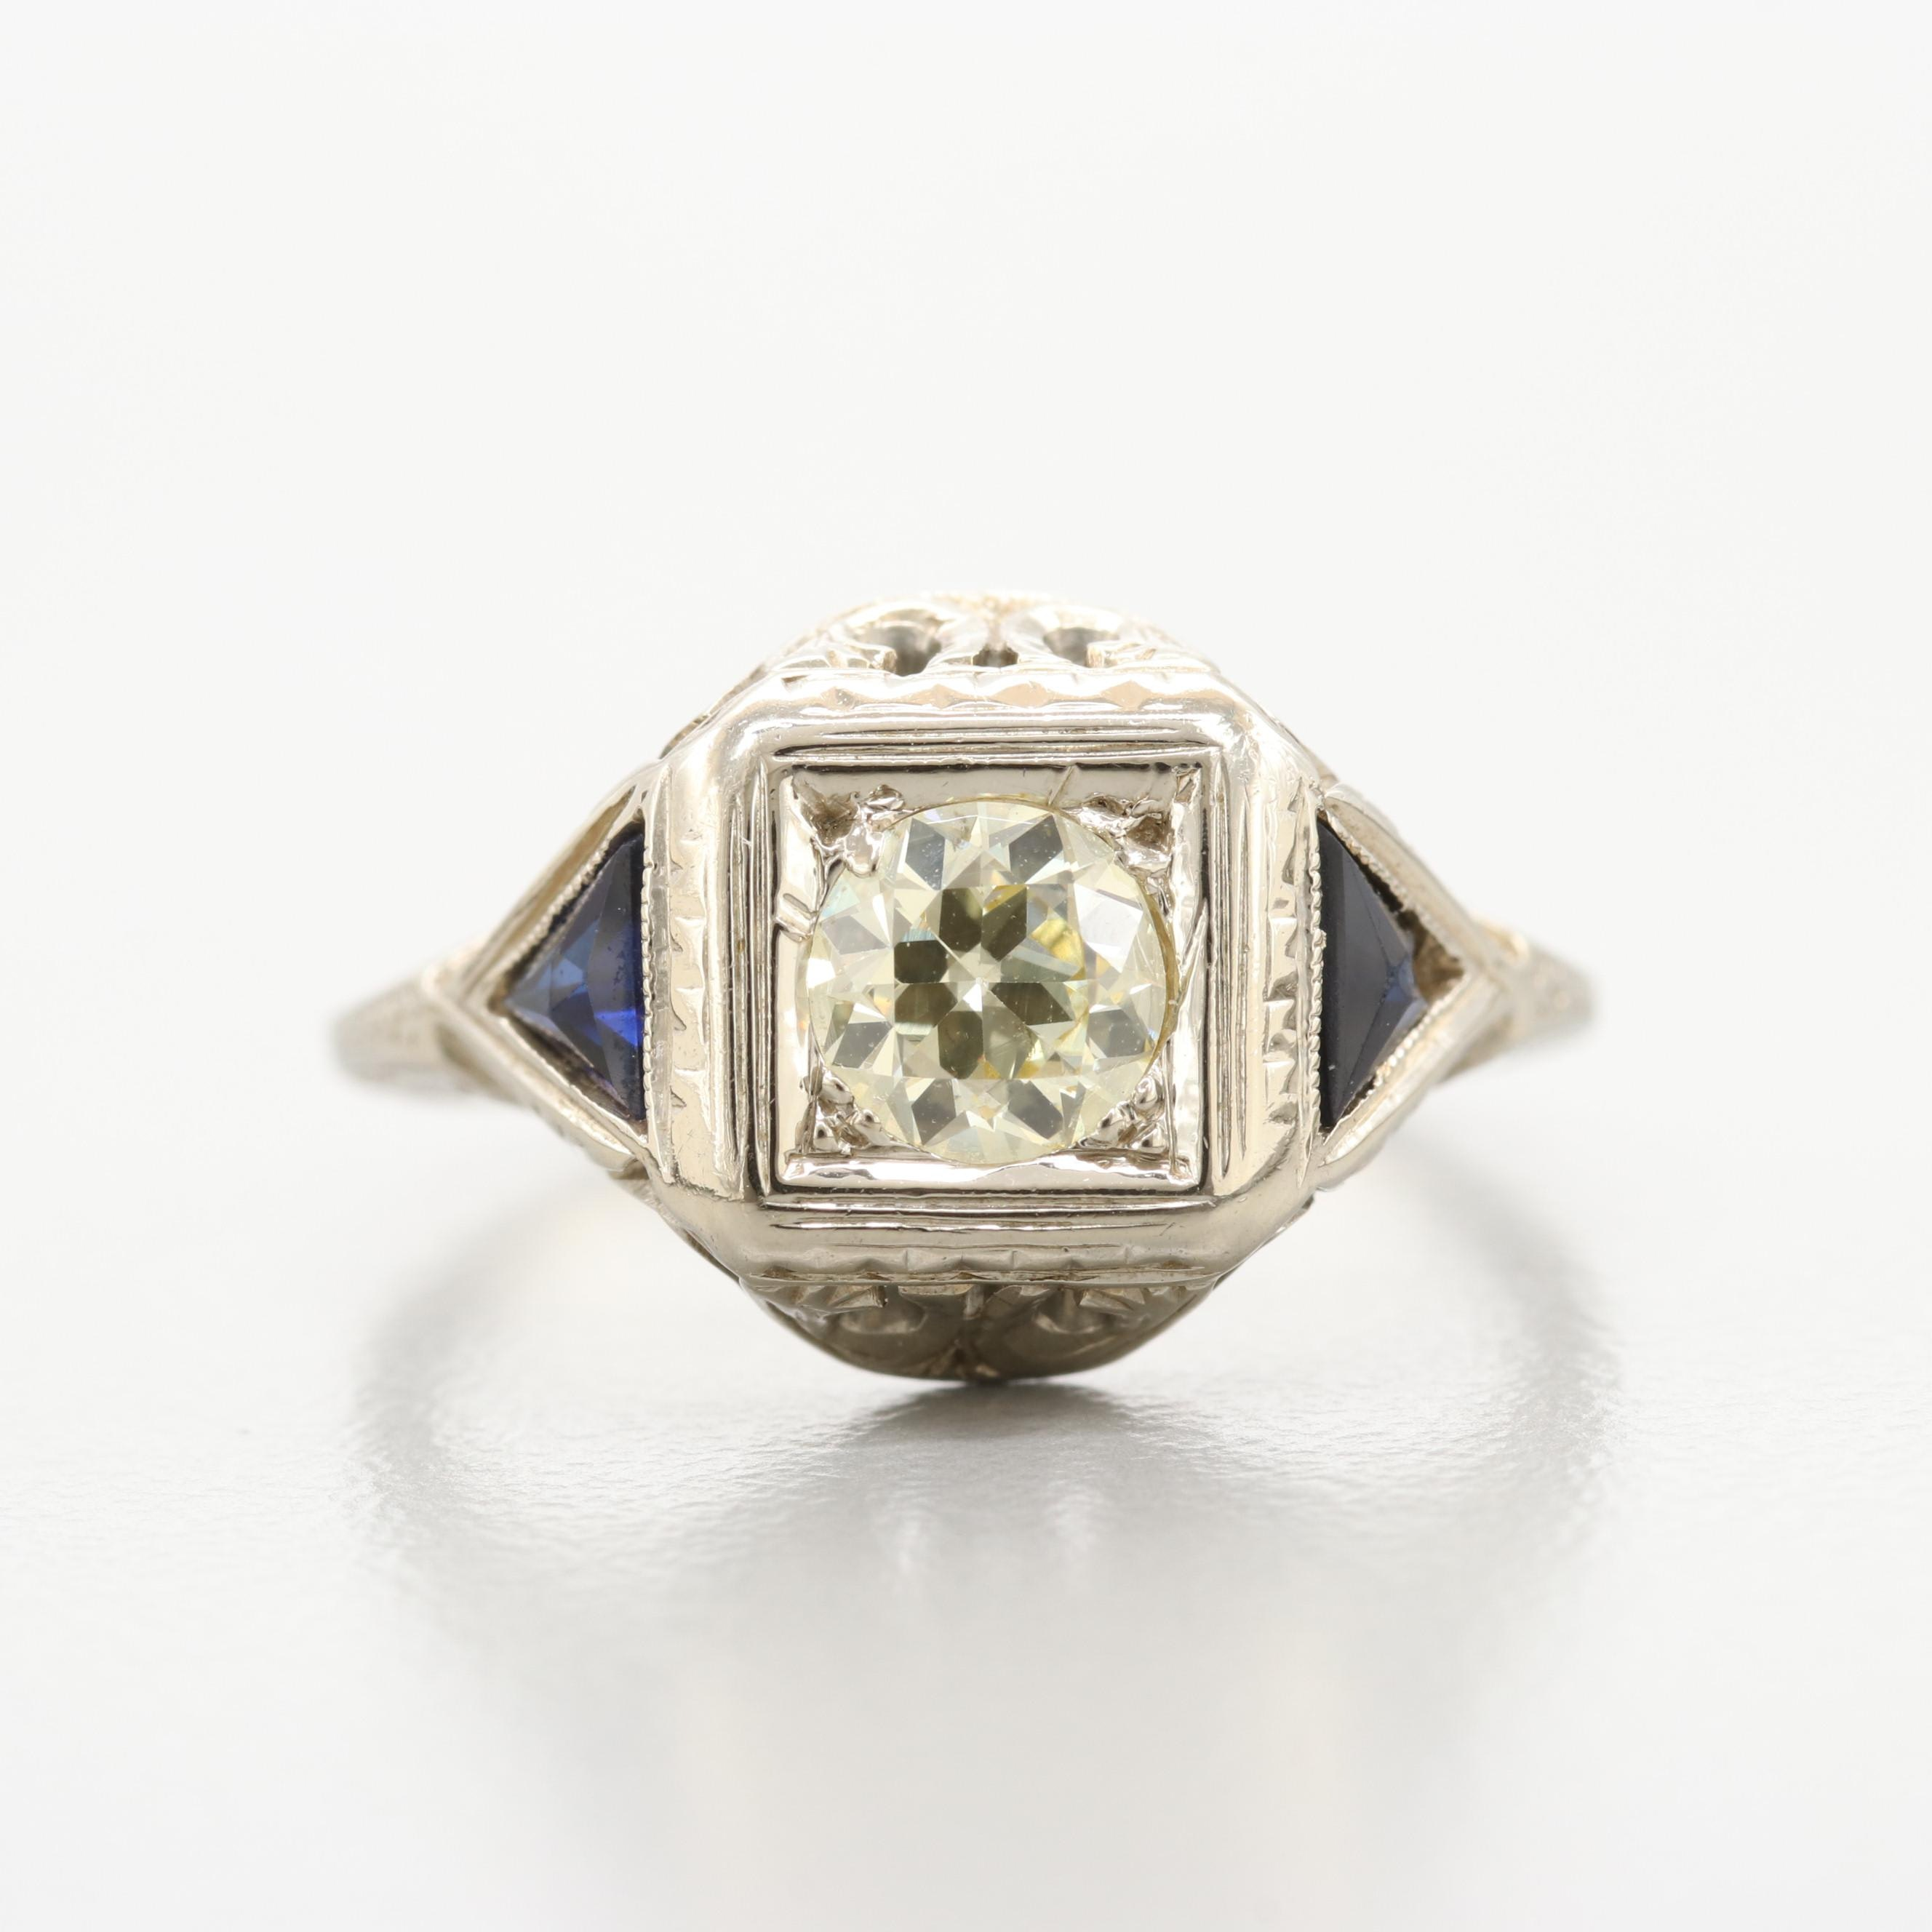 Belais Brothers Art Deco 18K White Gold Diamond and Synthetic Sapphire Ring